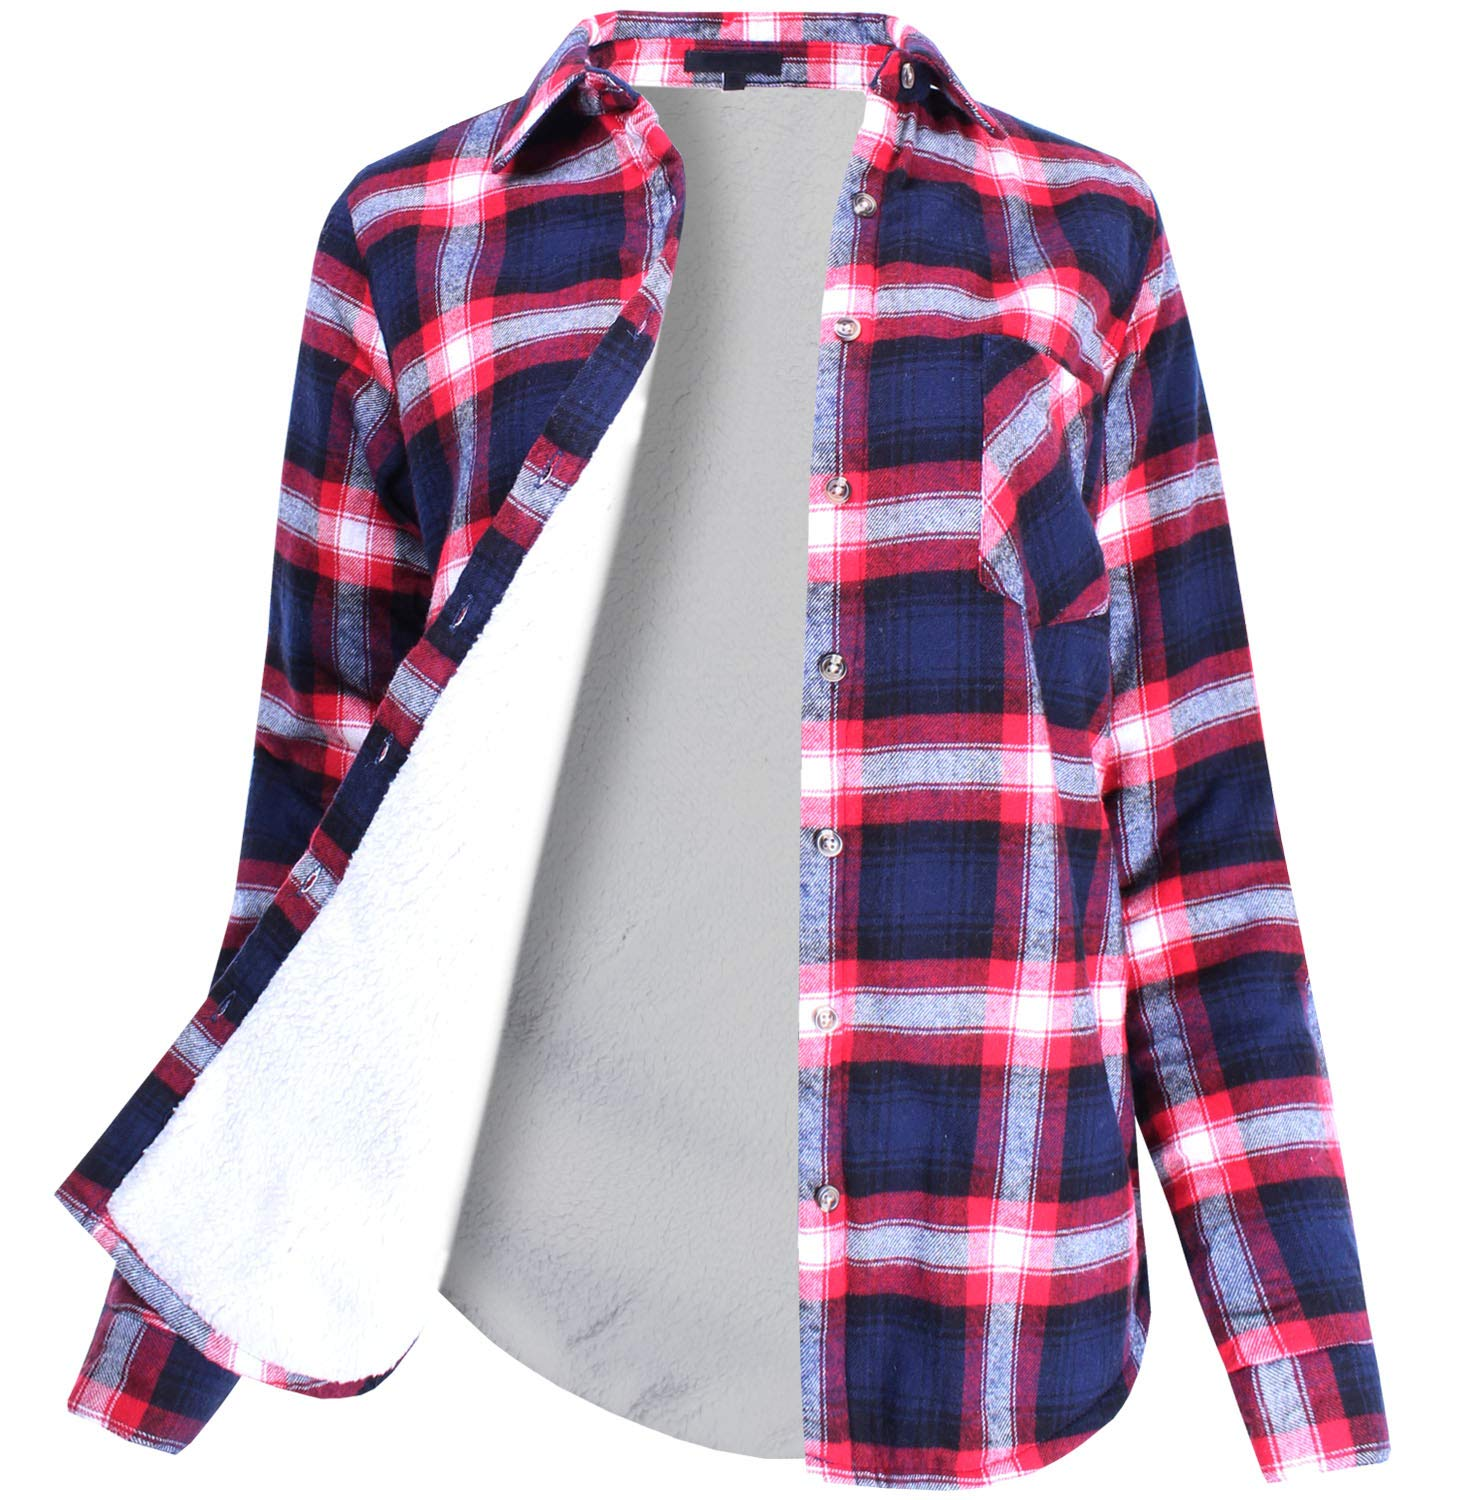 e82911e06 Ladies' Code Women's Winter Flannel Plaid Button Down Top with Sherpa  Fleece Lining product image